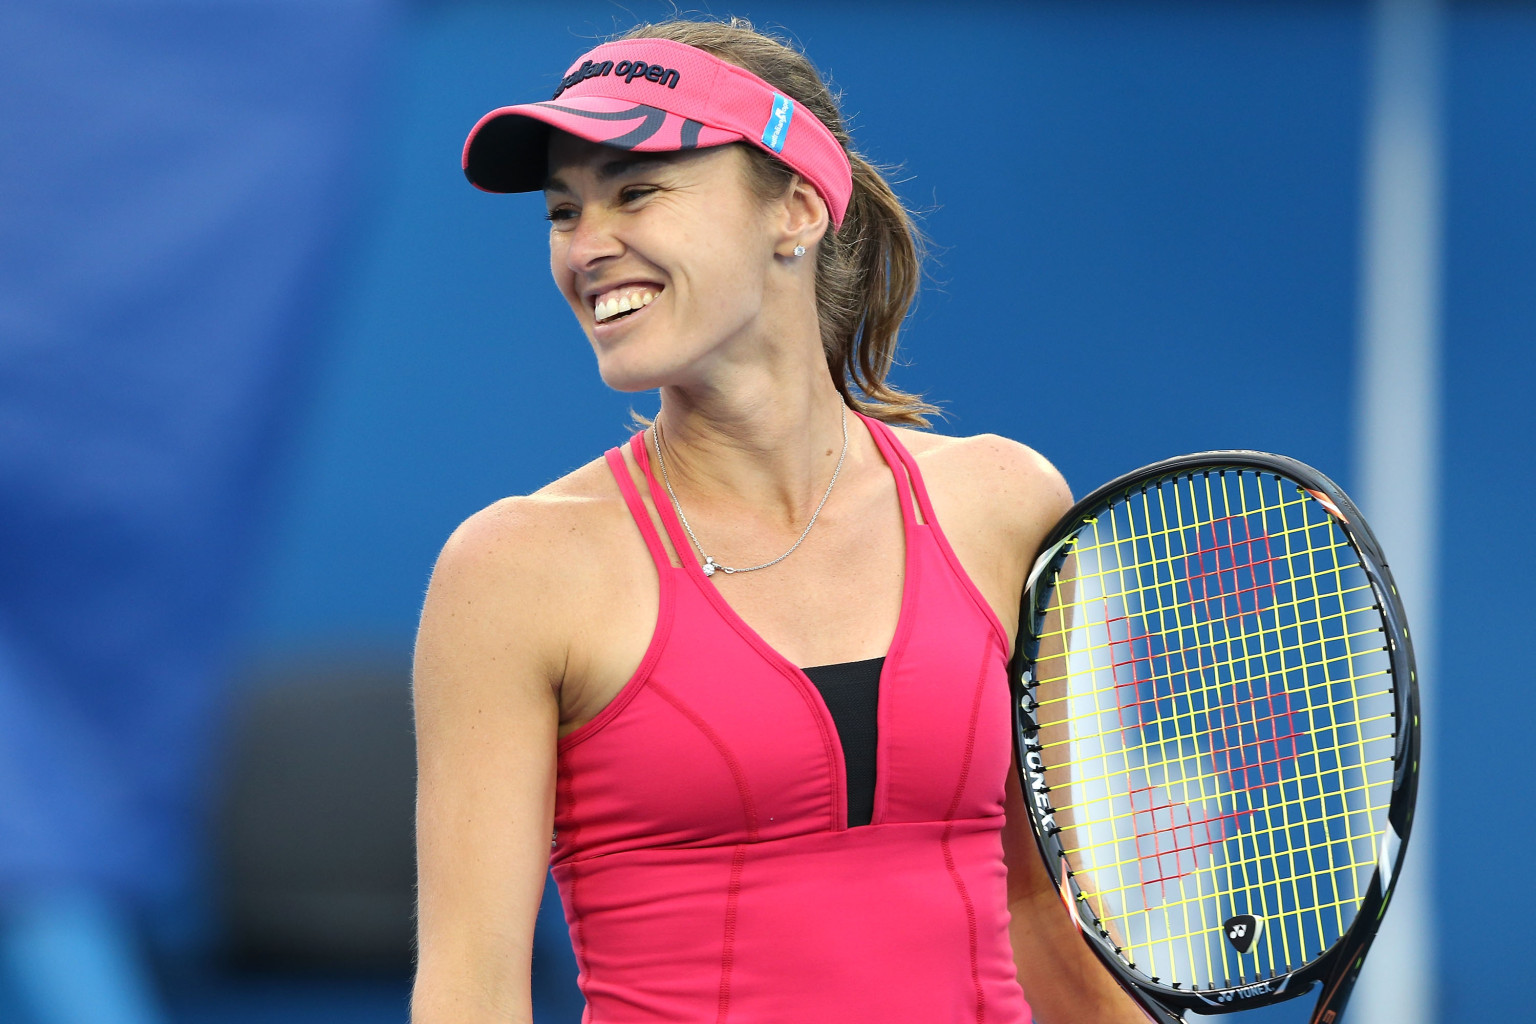 Martina Hingis Husband Says She Is A Serial Cheater Report